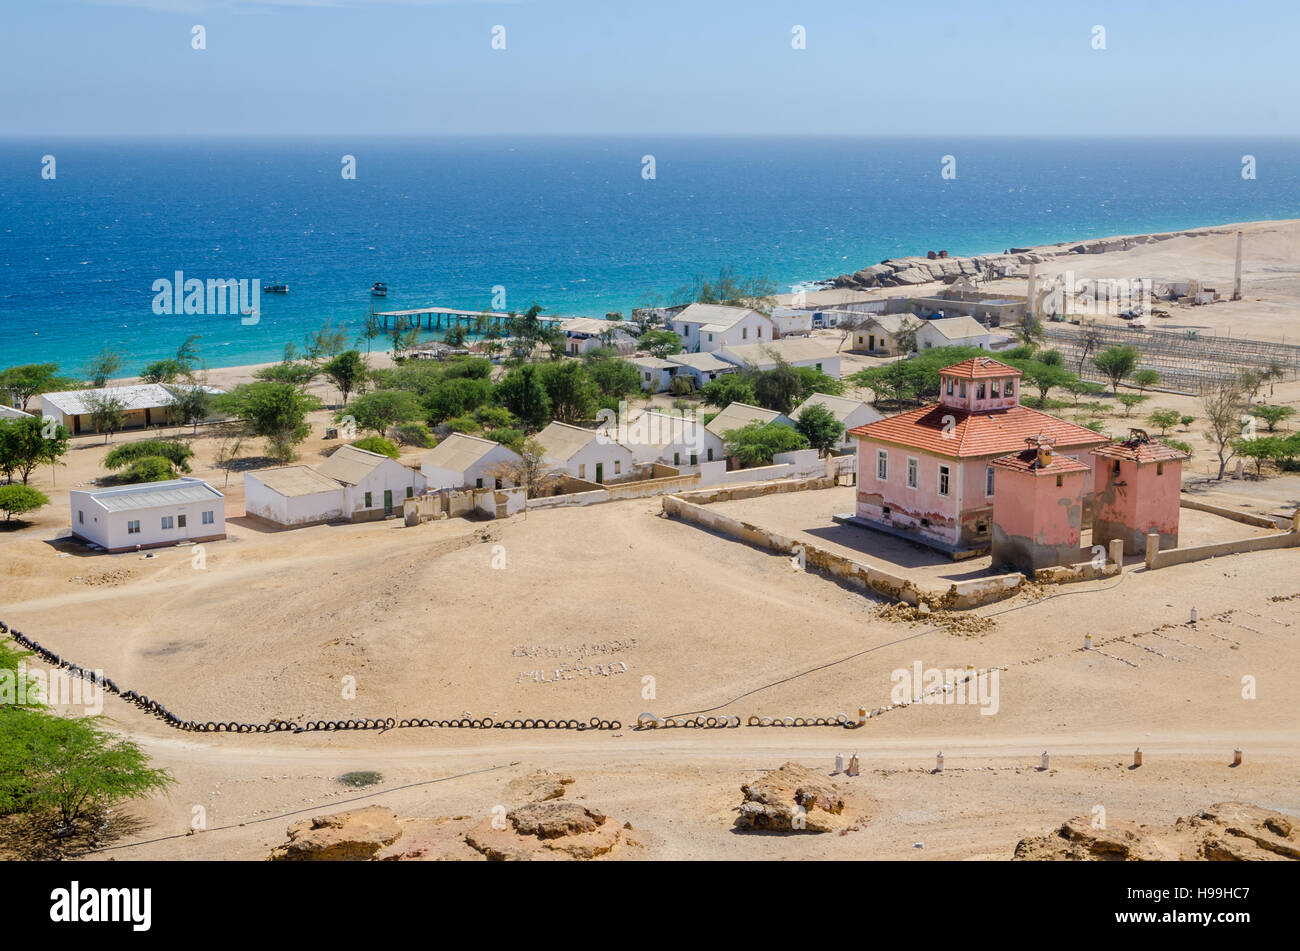 Small fishing village Mucuio with dominating Portuguese colonial building and white washed buildings in Angola. - Stock Image